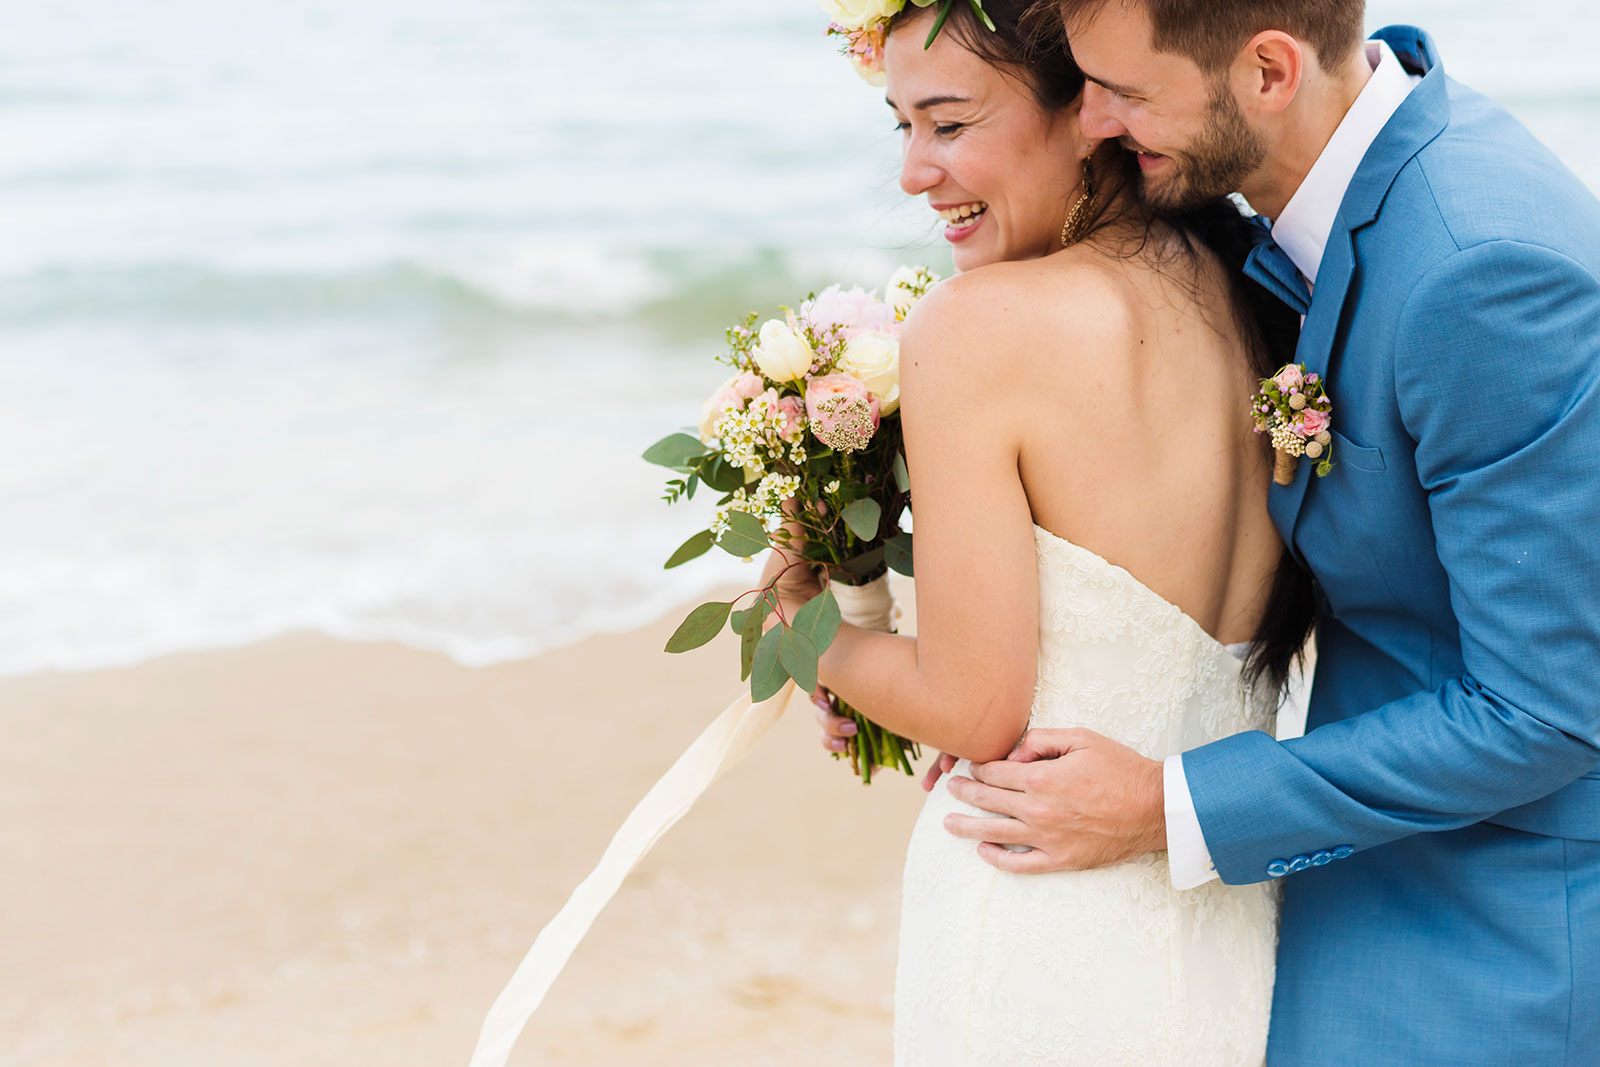 So How Much Does A Marriage Celebrant Cost?